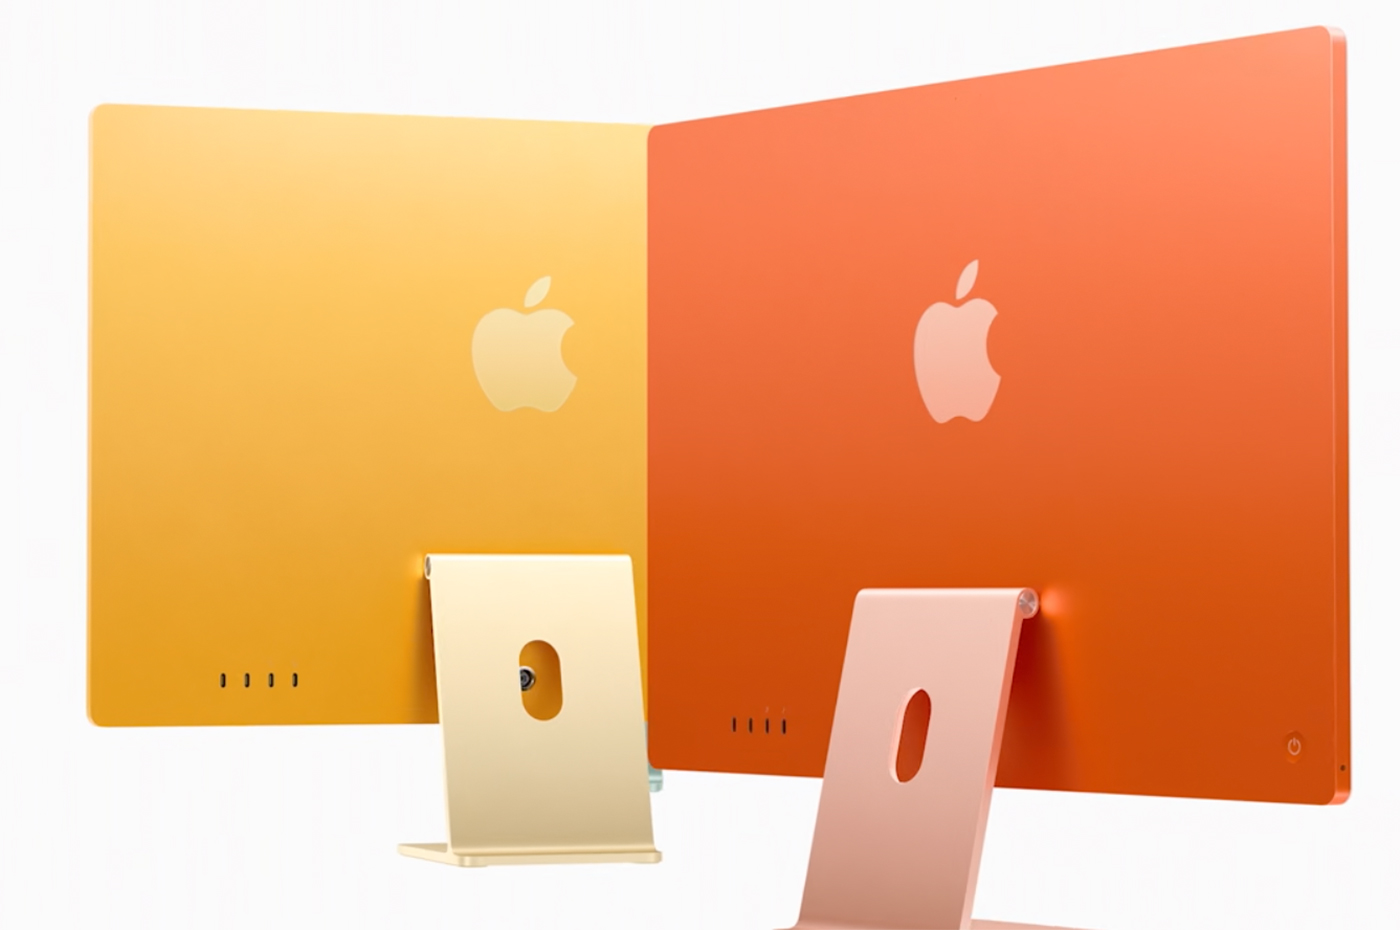 Imac Orange / Apple's new iMac comes with color-matched ...